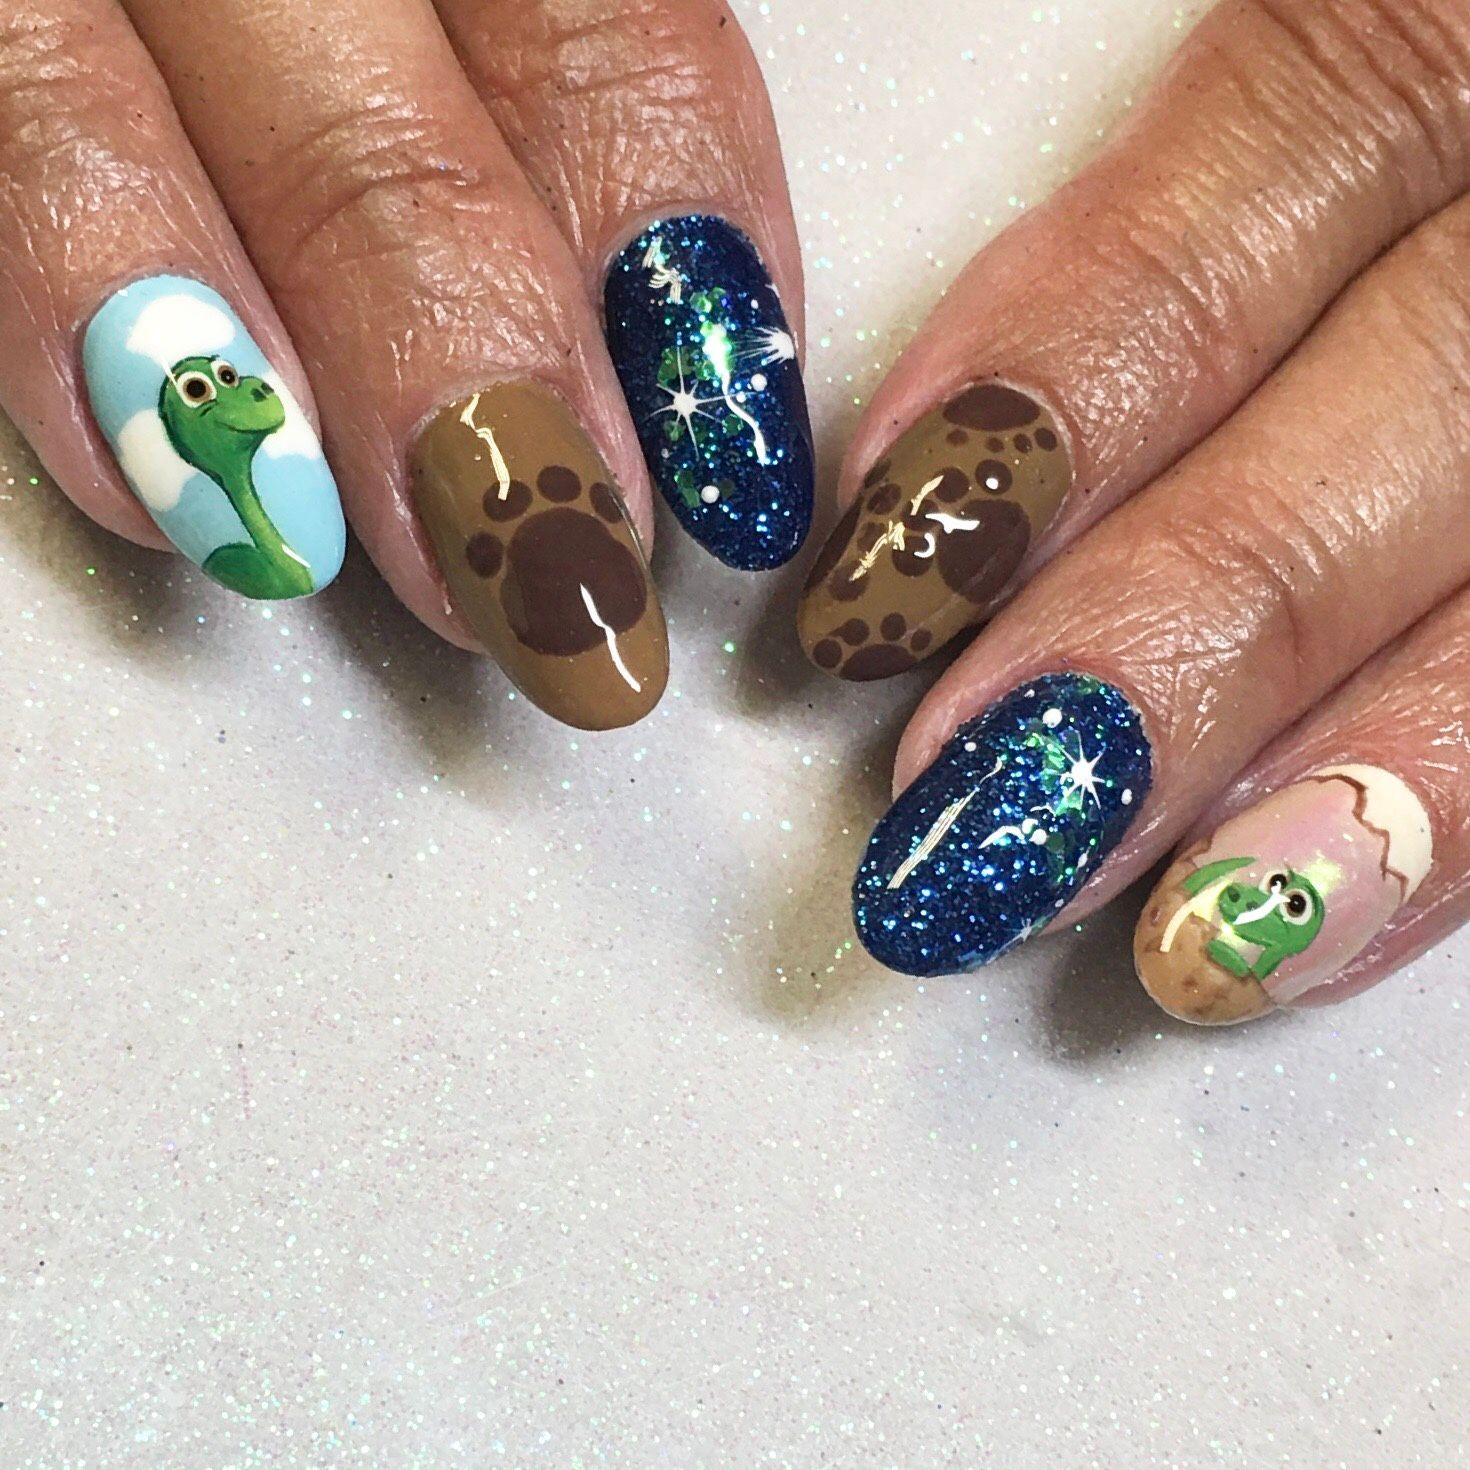 The good dinosaur nails are the perfect compliment to baby Argos christening. #using @ikoniqnailsuk #primagelpolish #showscratch